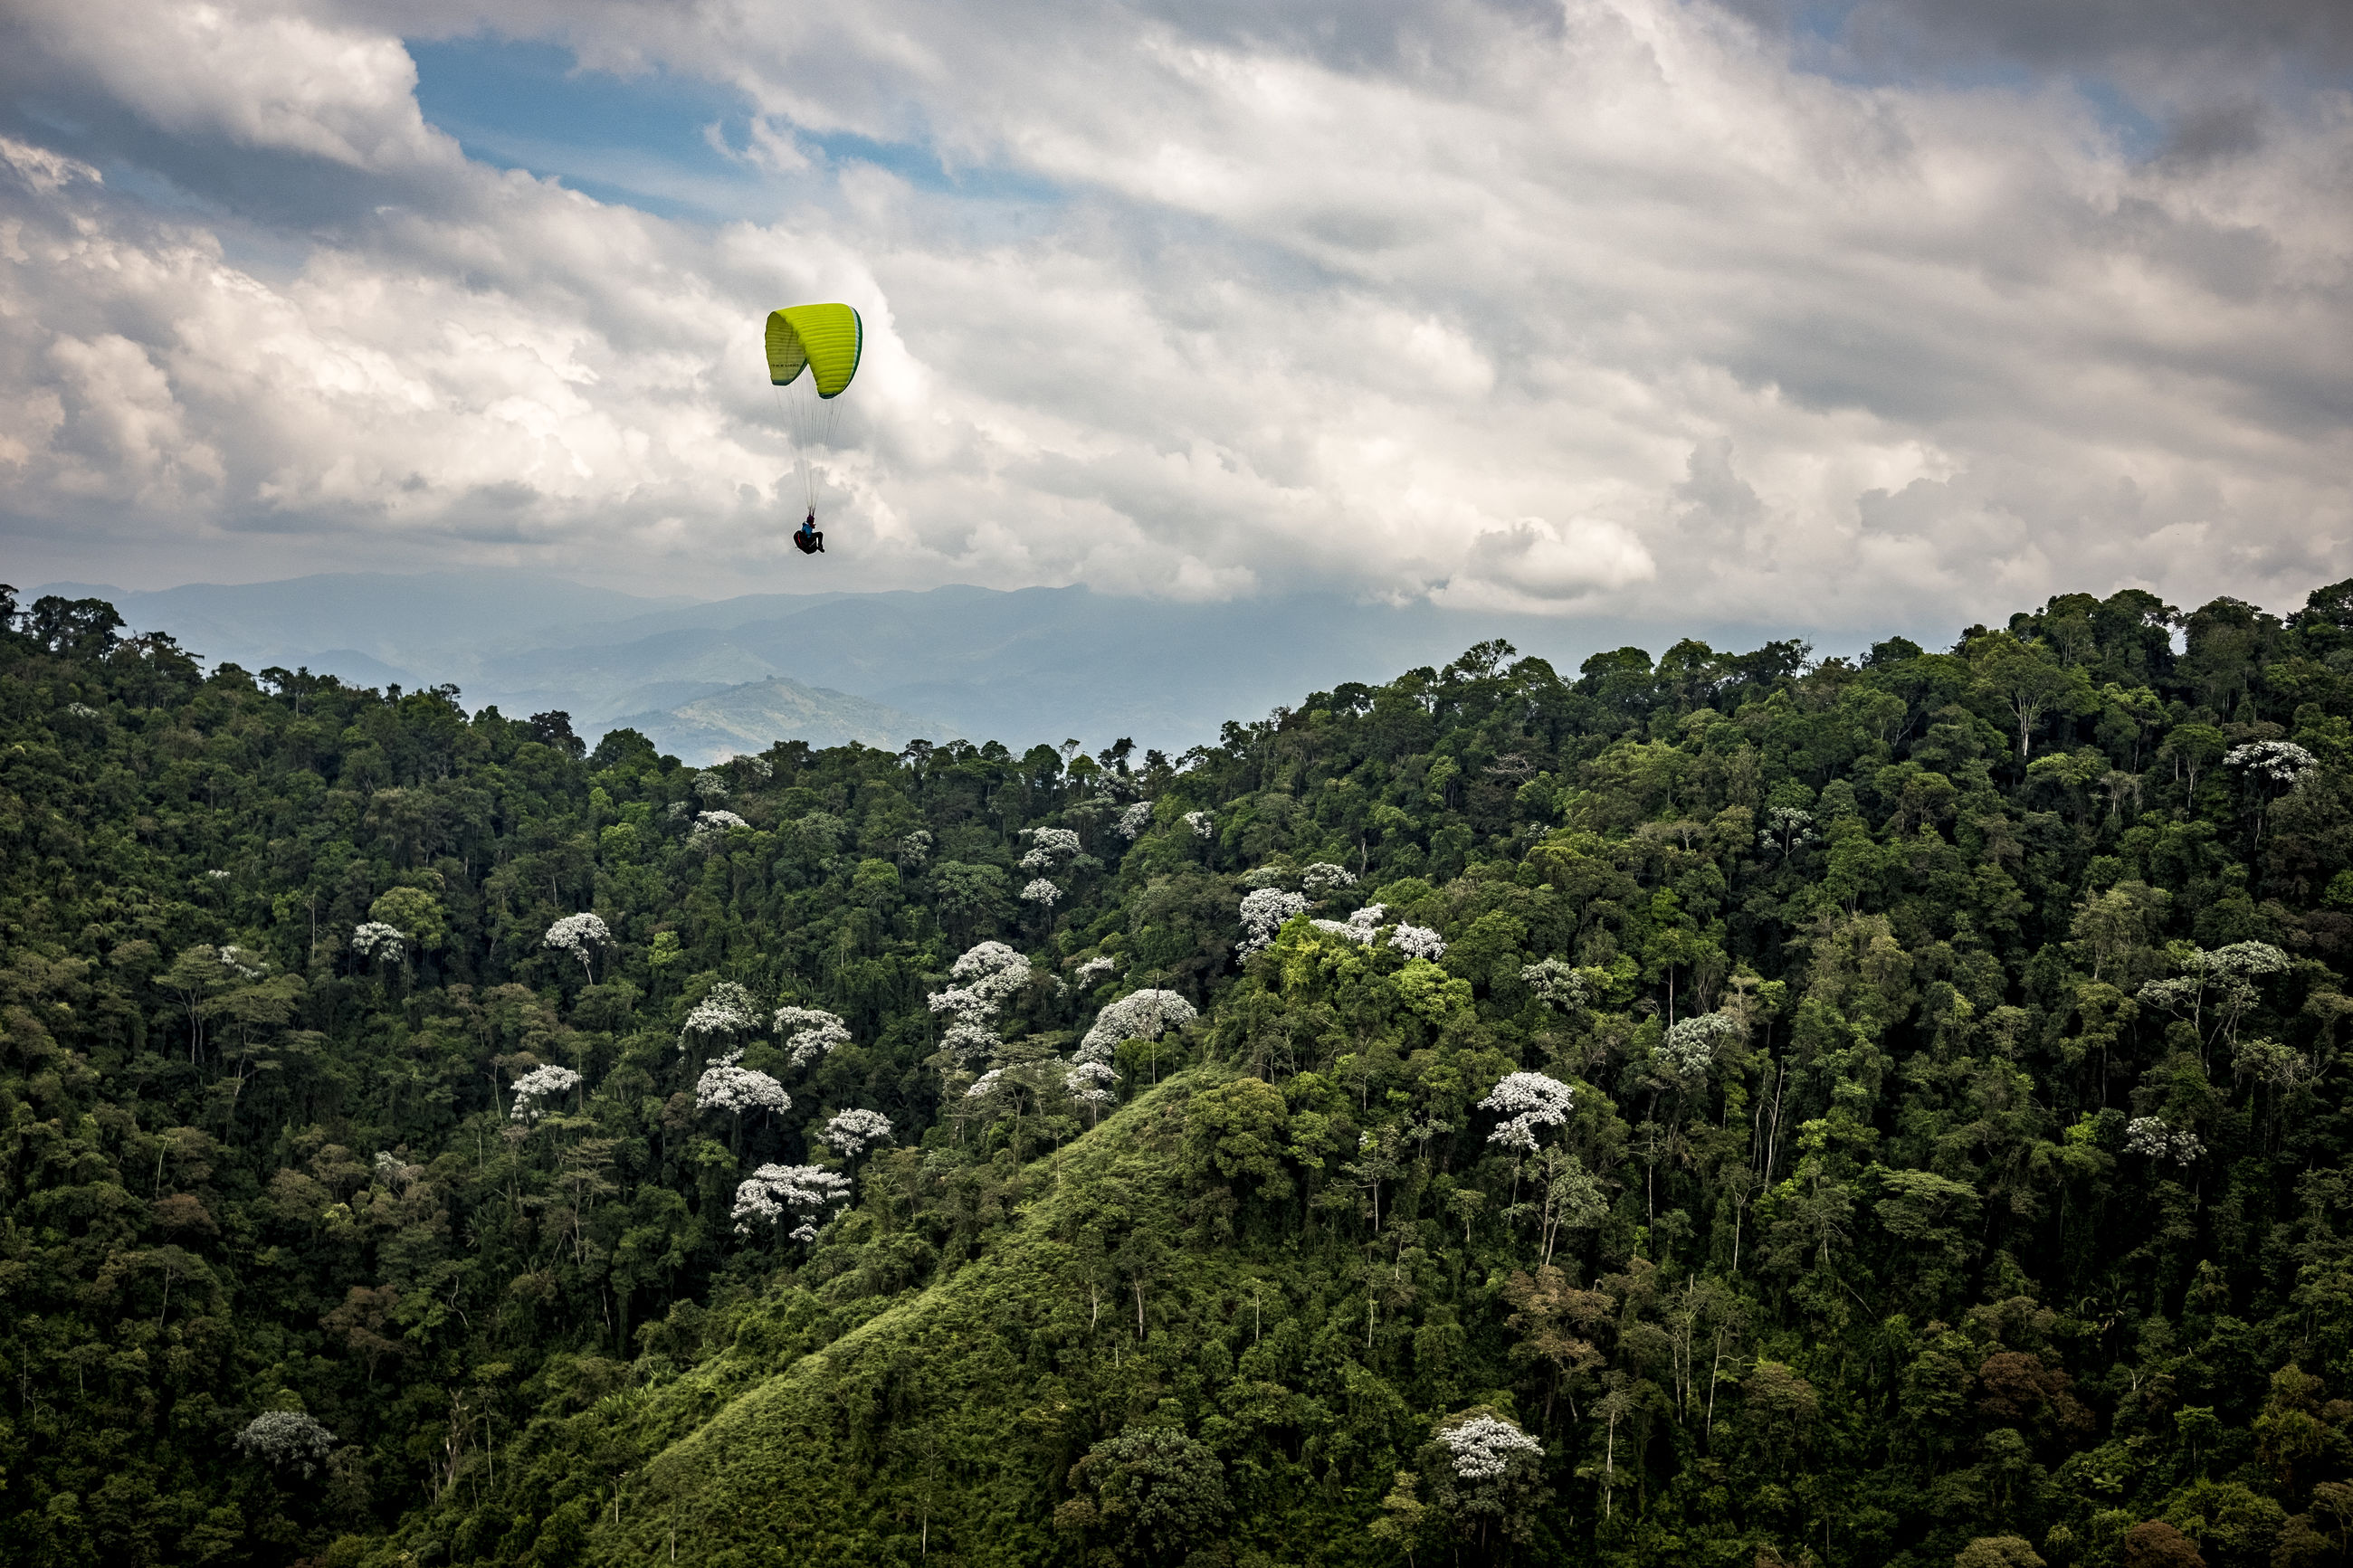 adventure, sky, cloud - sky, tree, plant, extreme sports, flying, transportation, parachute, mid-air, nature, beauty in nature, sport, paragliding, growth, leisure activity, unrecognizable person, freedom, day, balloon, outdoors